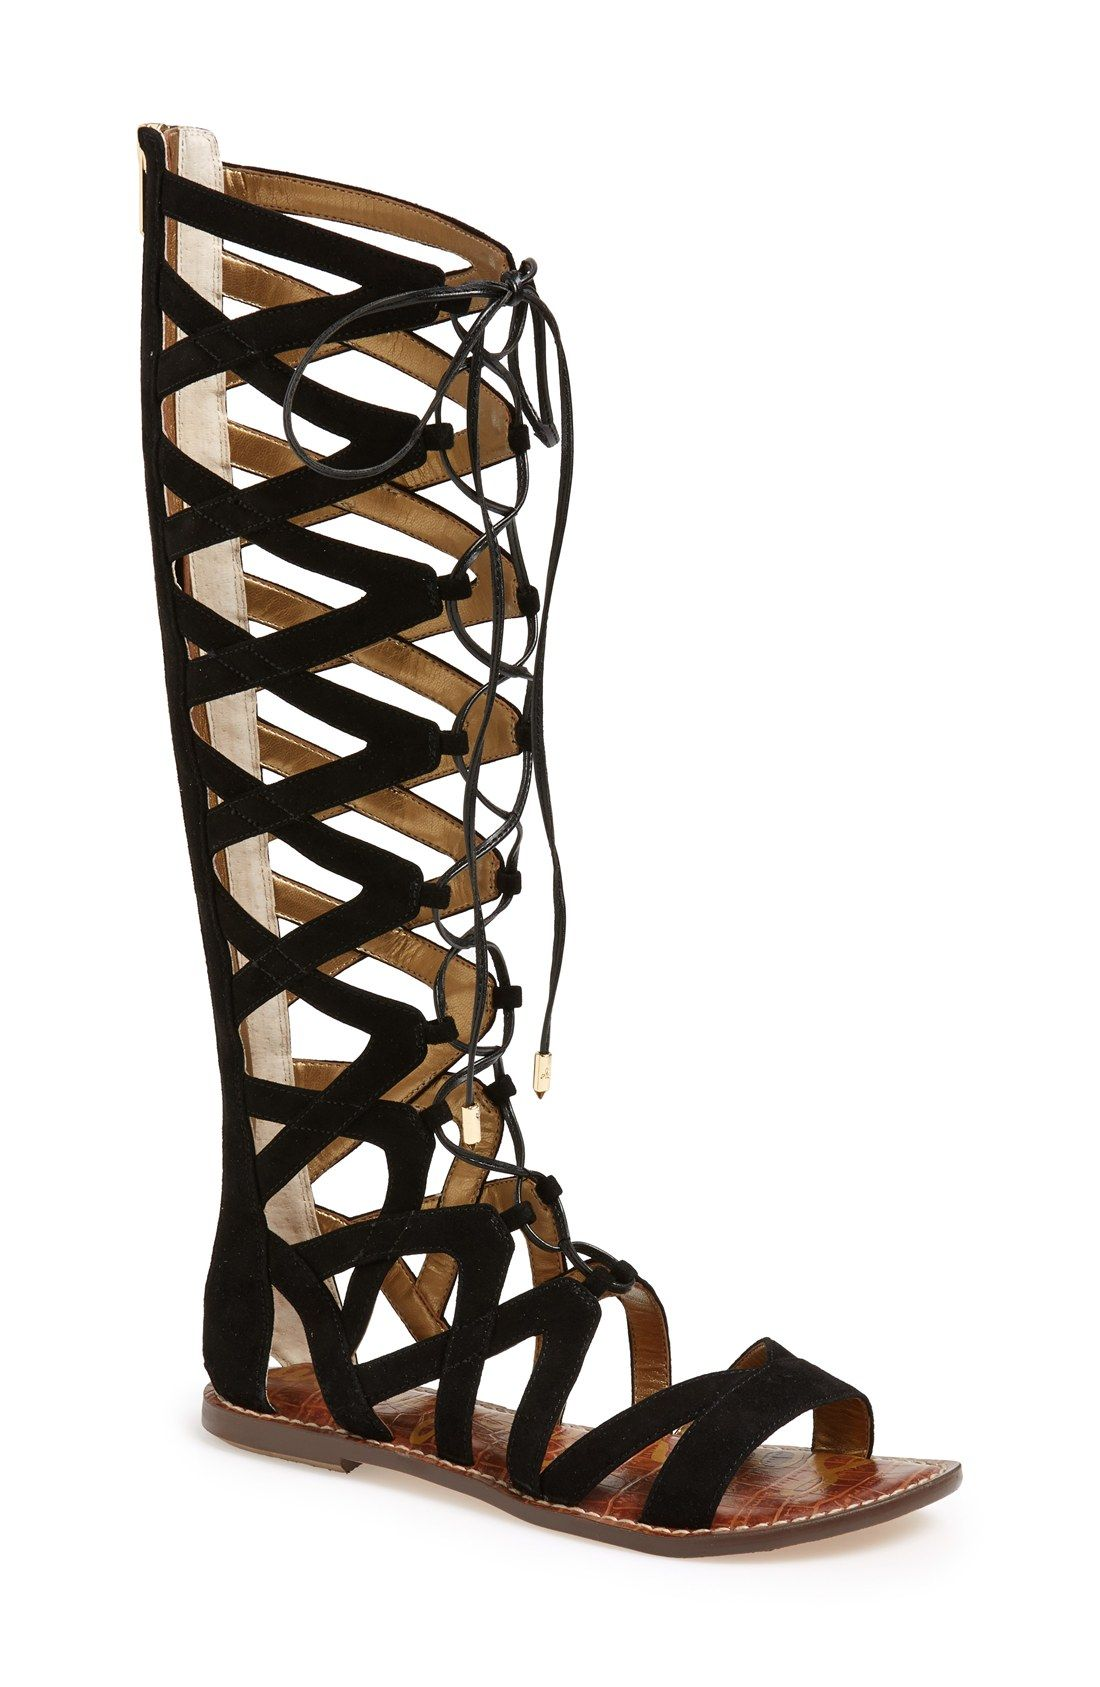 f1c33056aad491 These cool and trendy gladiator sandals grab attention with its sleek black  suede straps that extend knee-high.